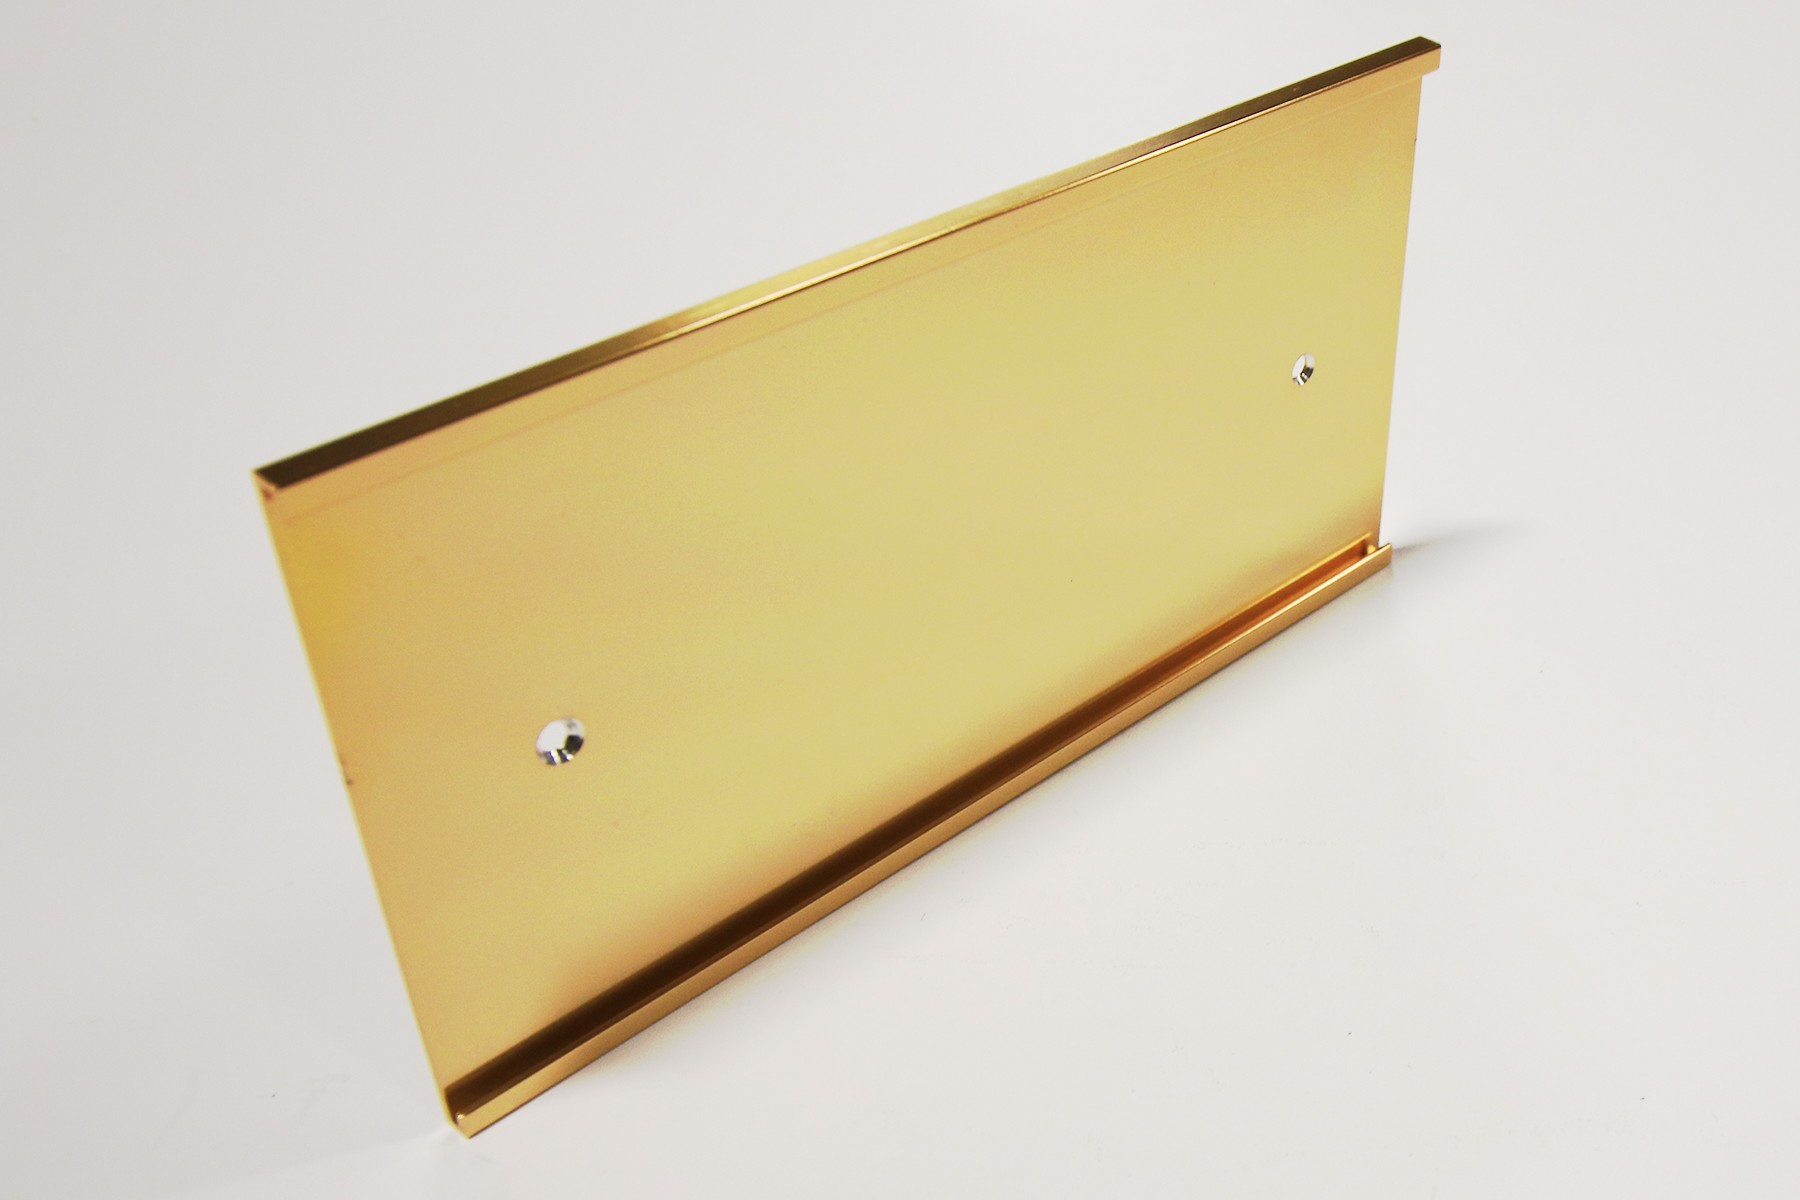 4 x 12 Wall Holder, Gold